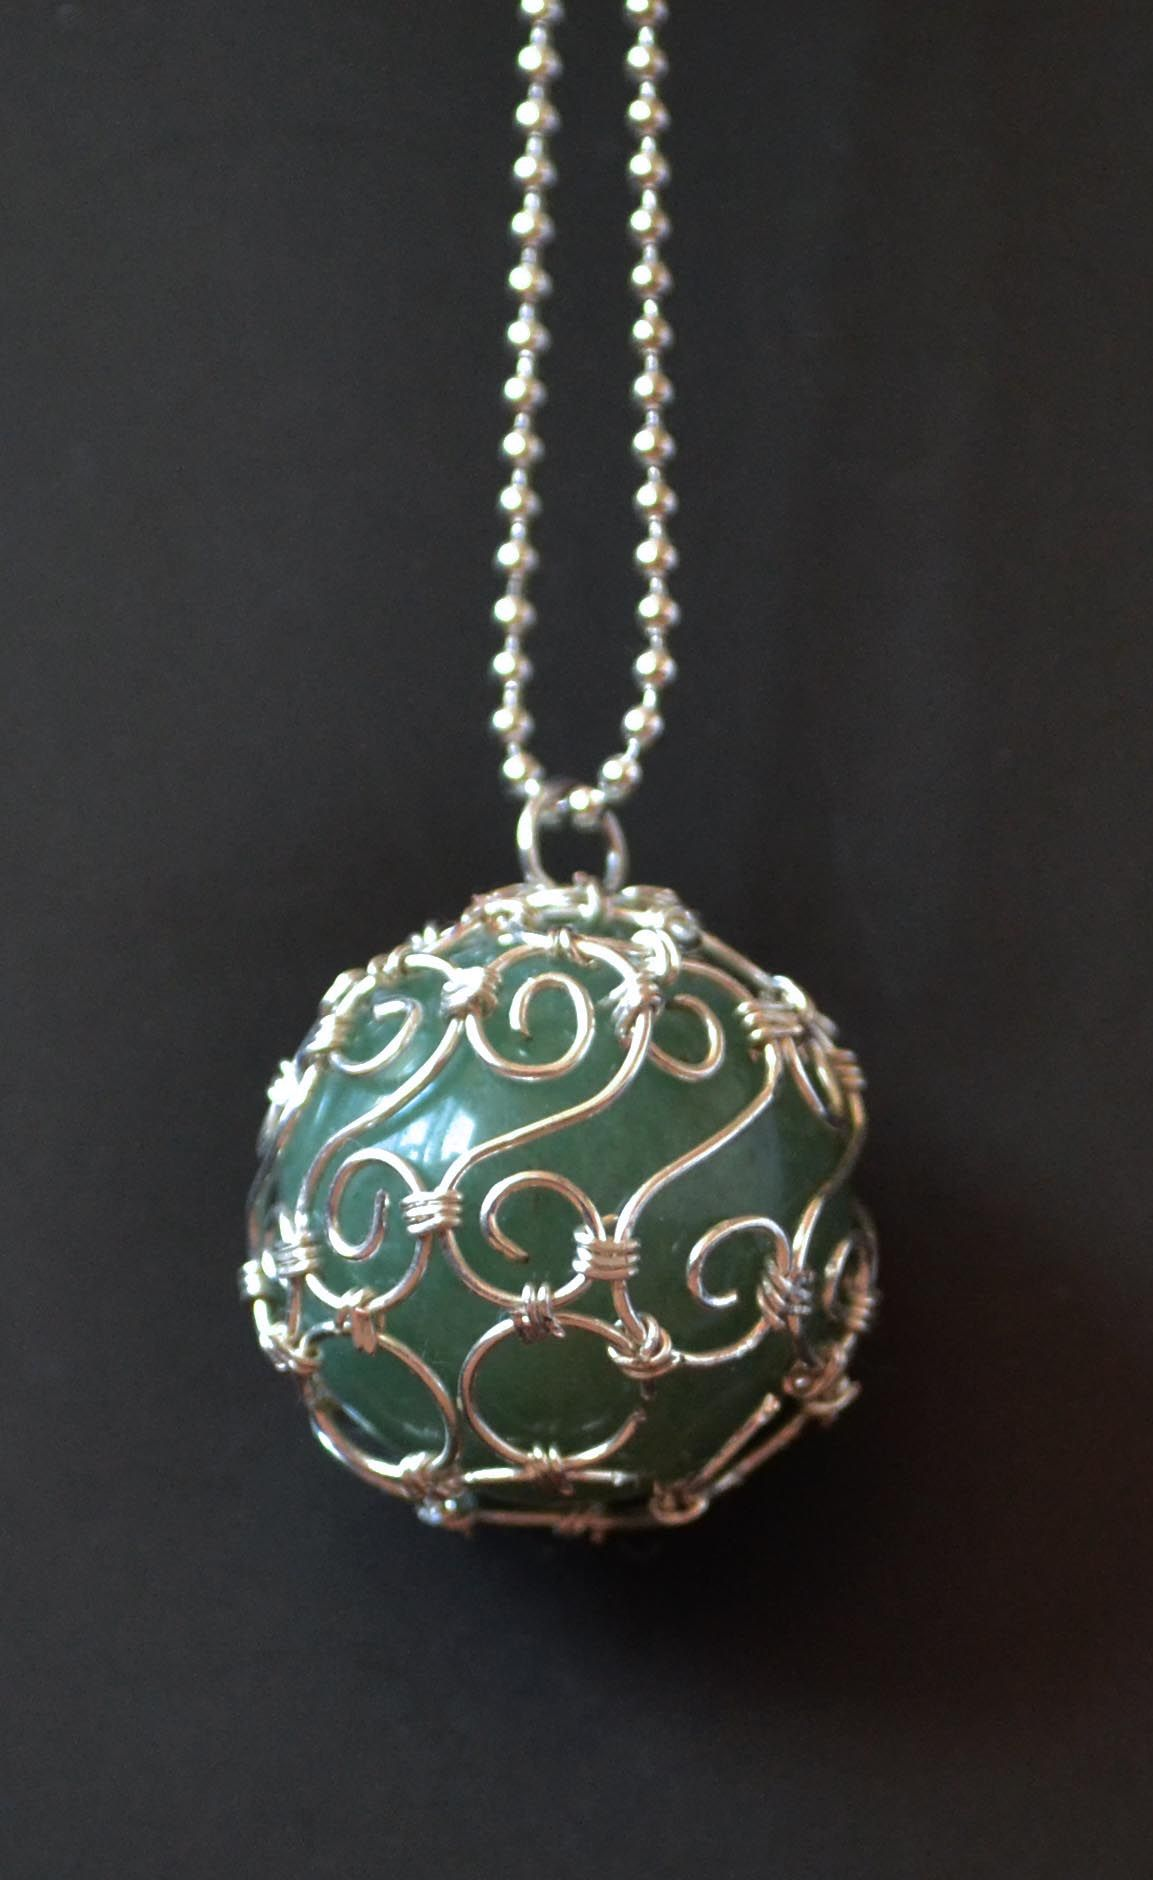 Oasiaris - handcrafted jewelry | Aventurine Ball | Online Store ...